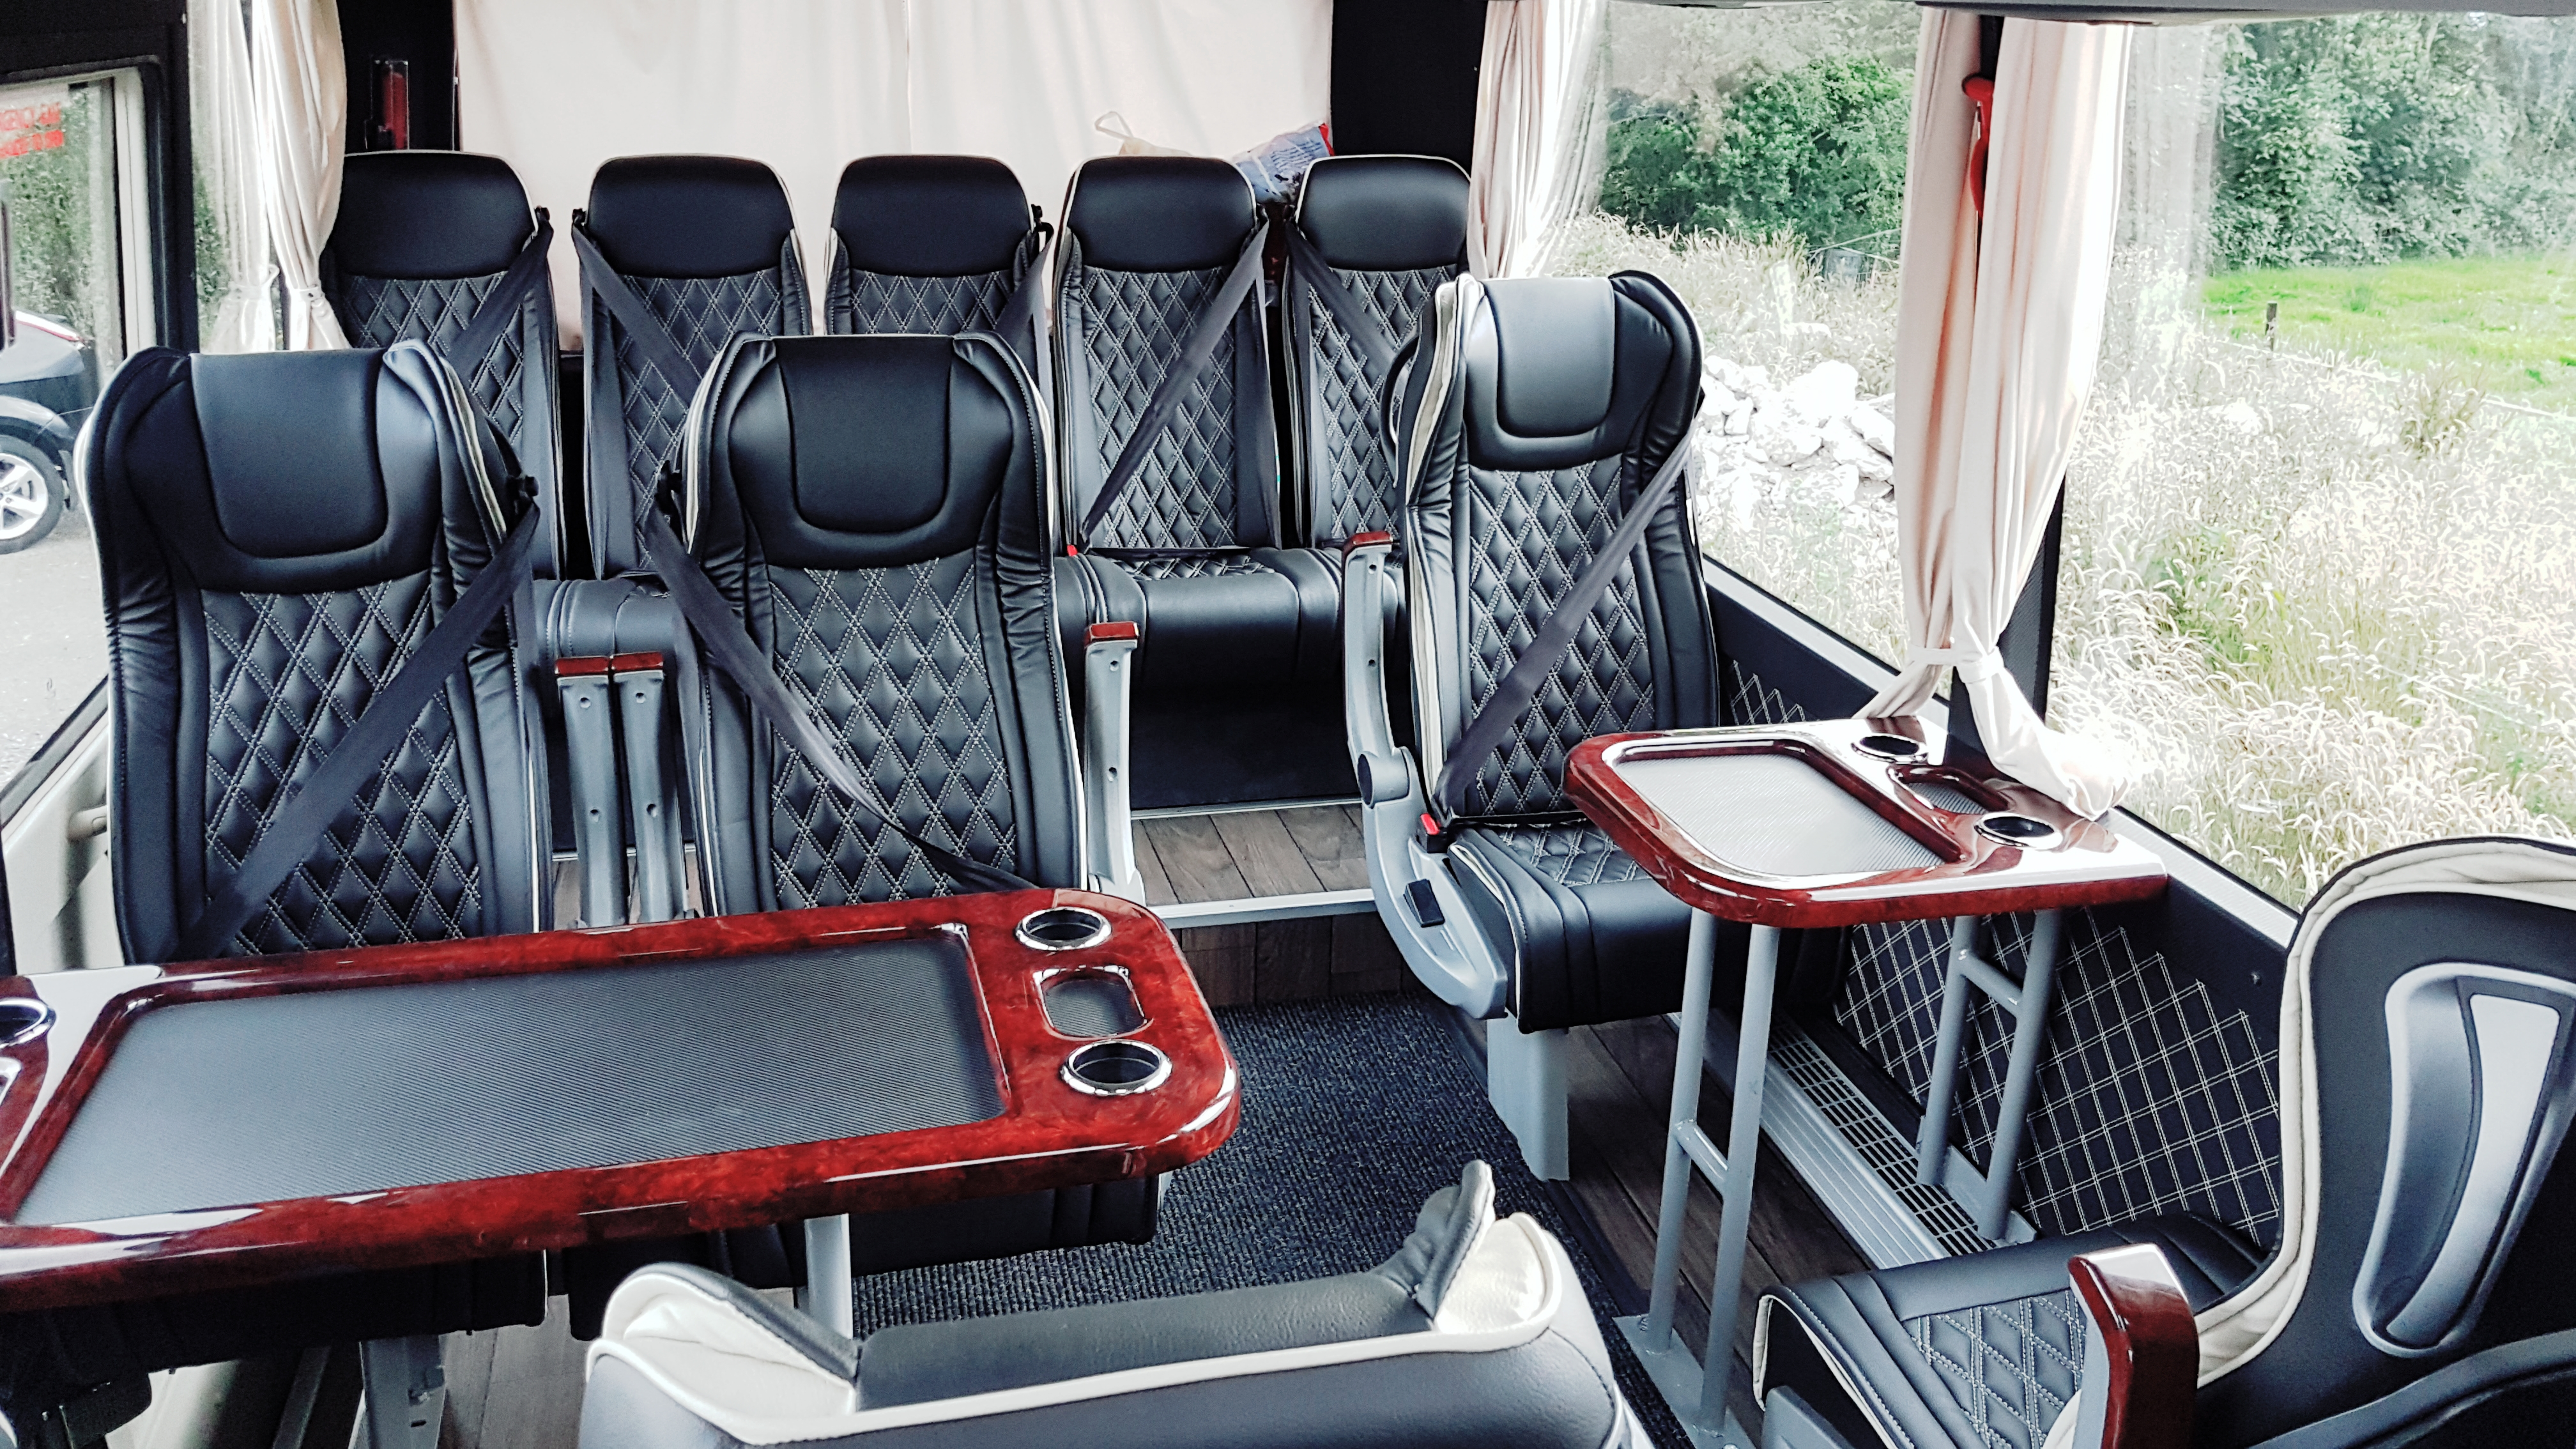 16 Seater Bus with Tables - Flynn's Coaches